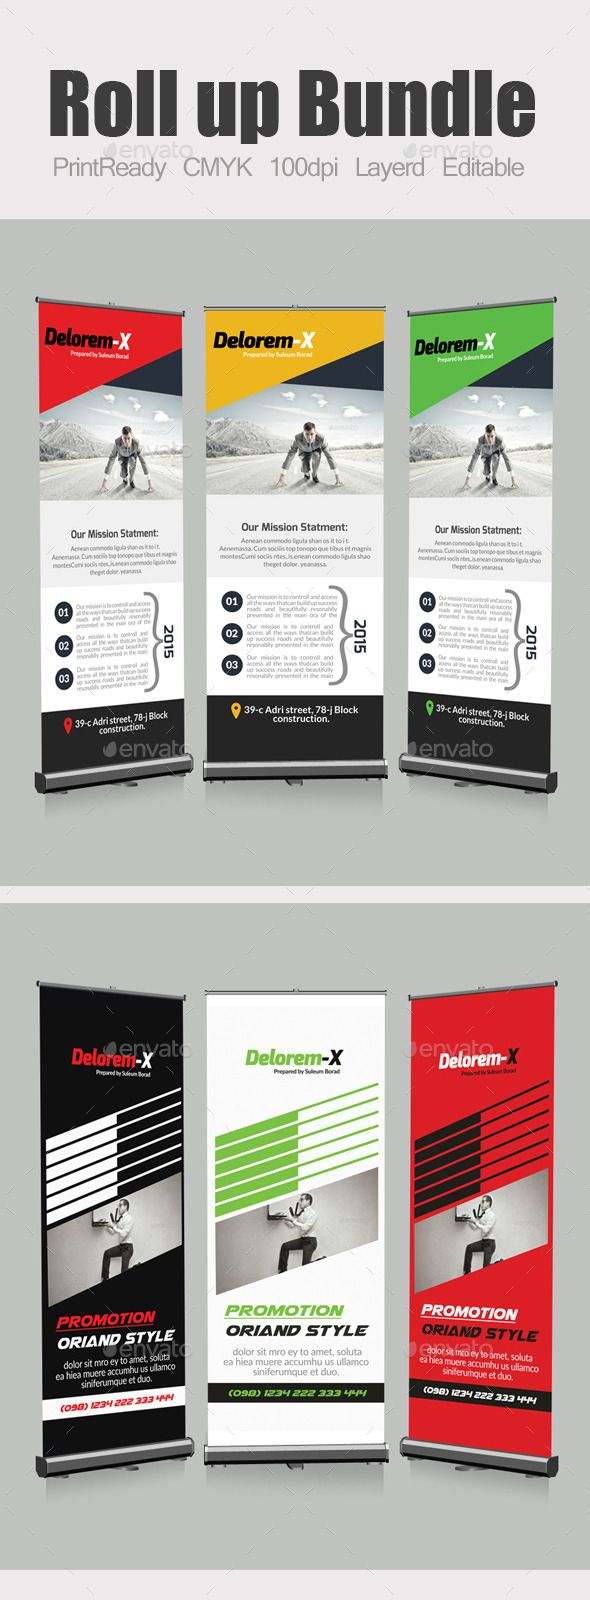 Exhibition Stand Activity Ideas : Roll up business banners template bundle activities